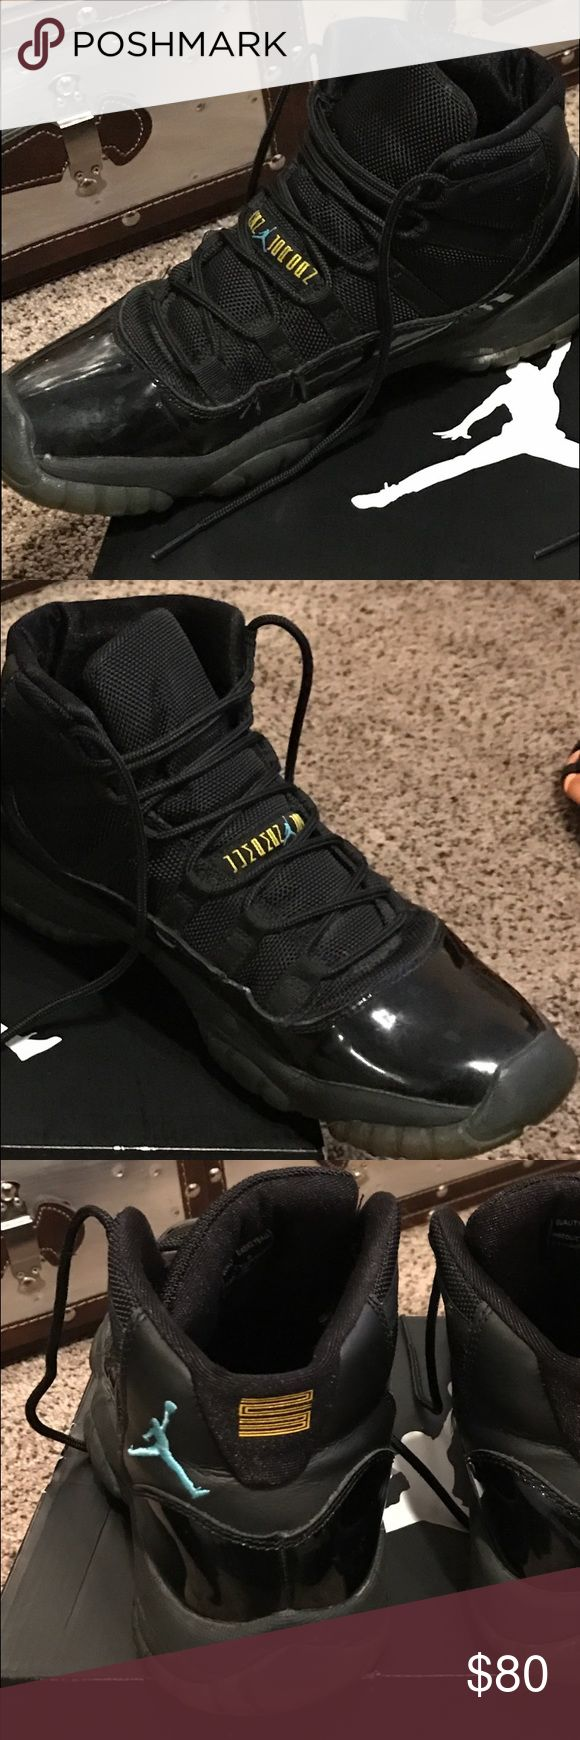 Authentic Jordan gamma 11 size 6 youth 100% authentic Jordan gamma 11s size 6 youth Jordan Shoes Sneakers